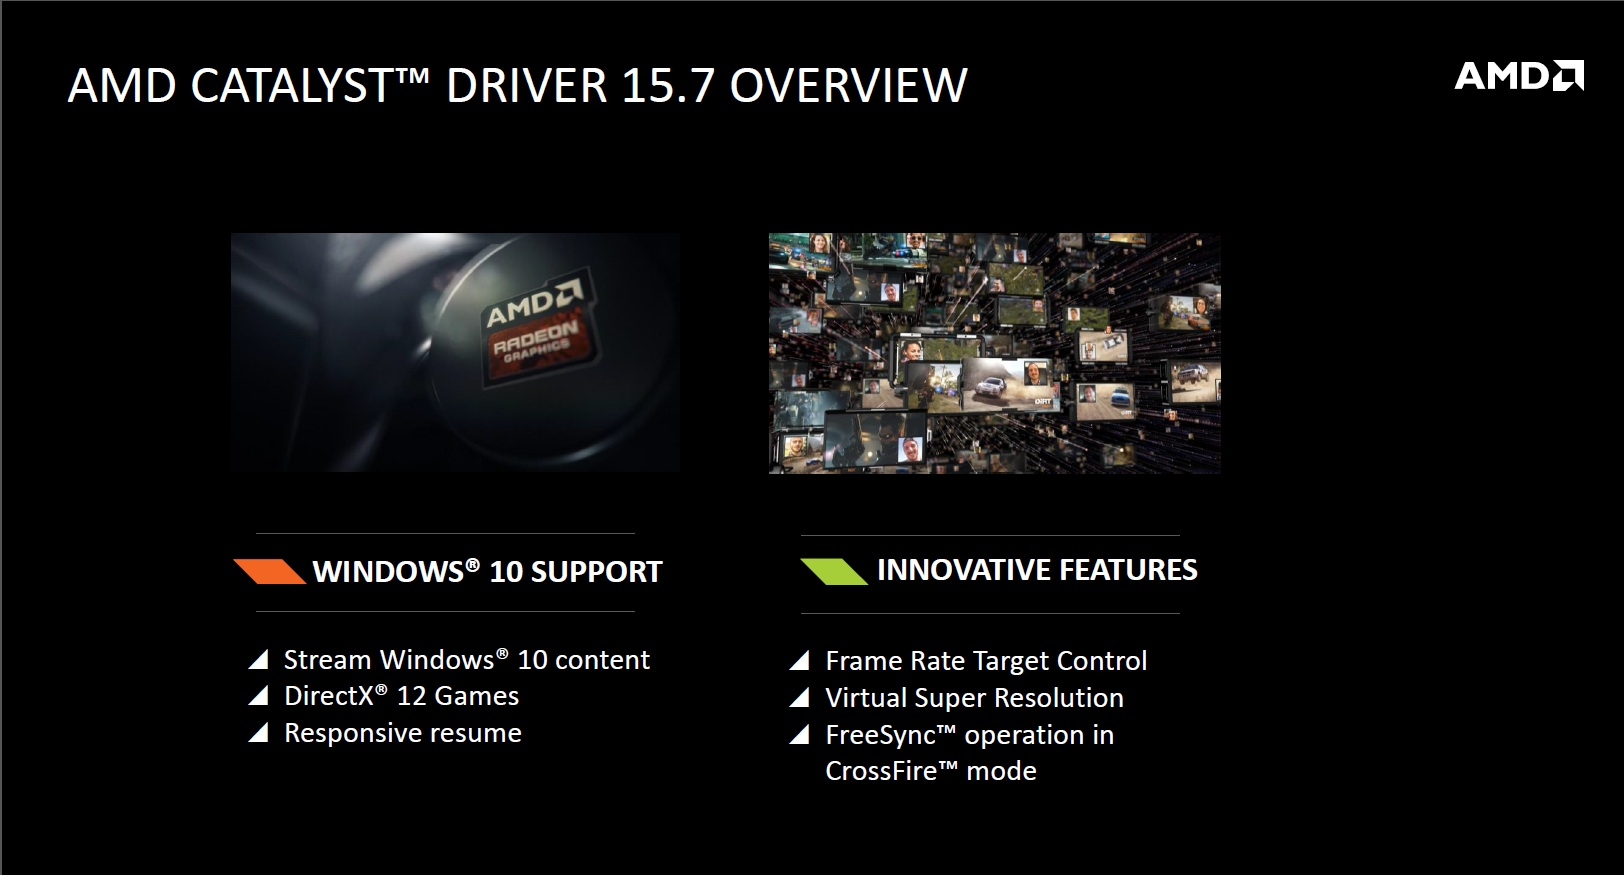 AMD Catalyst 15.7 Driver